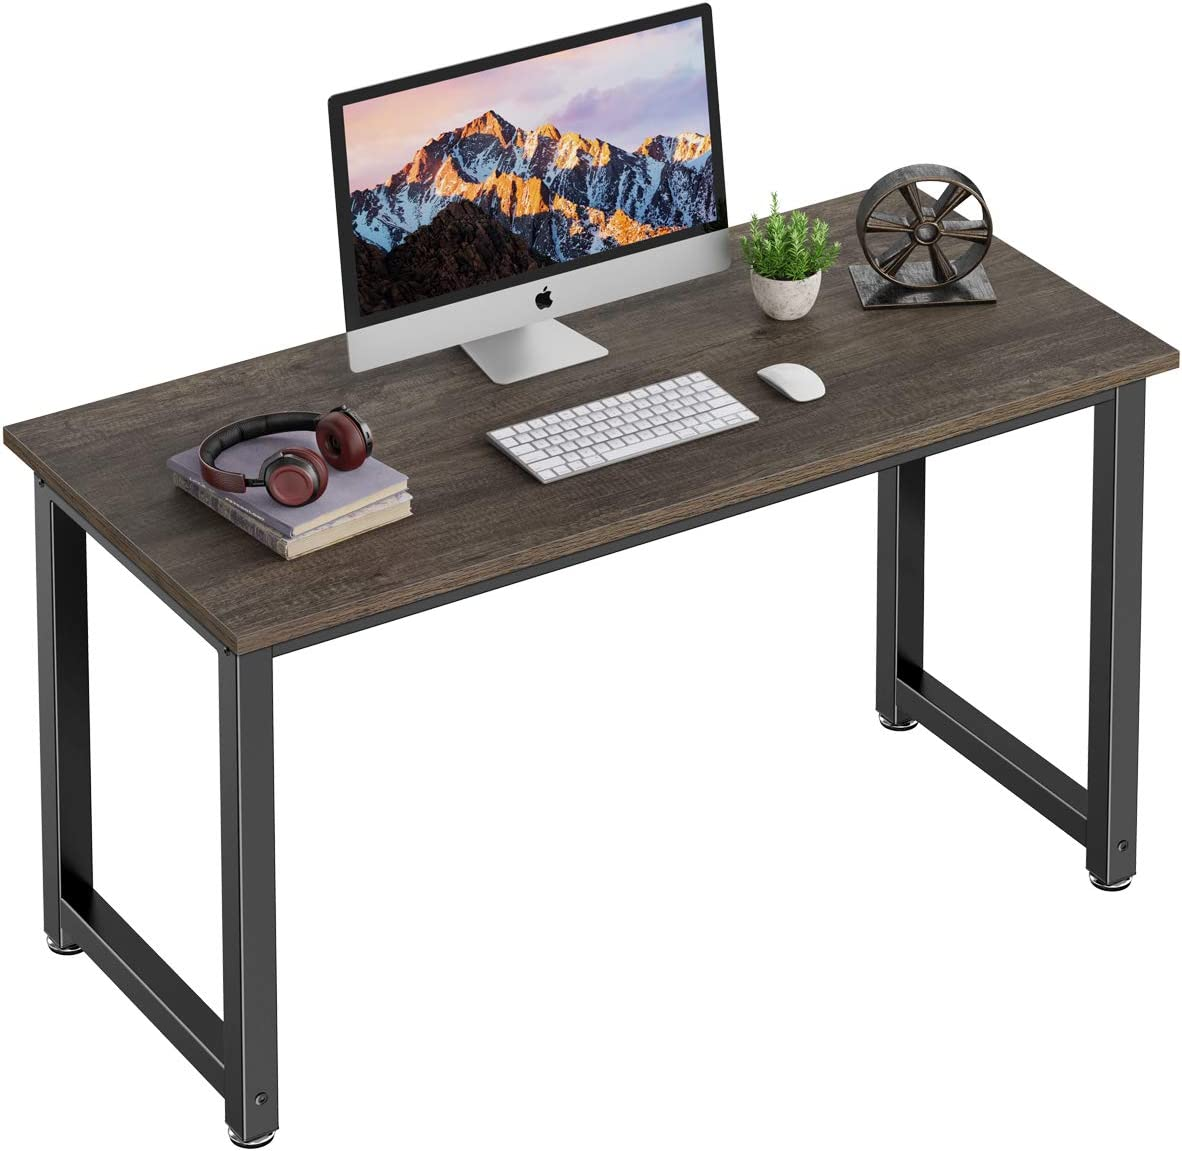 Homemaxs Computer Desk, 47-inch Spacious Computer Table for Home Office, Small Computer Desk for Small Spaces, Bedroom, and Study